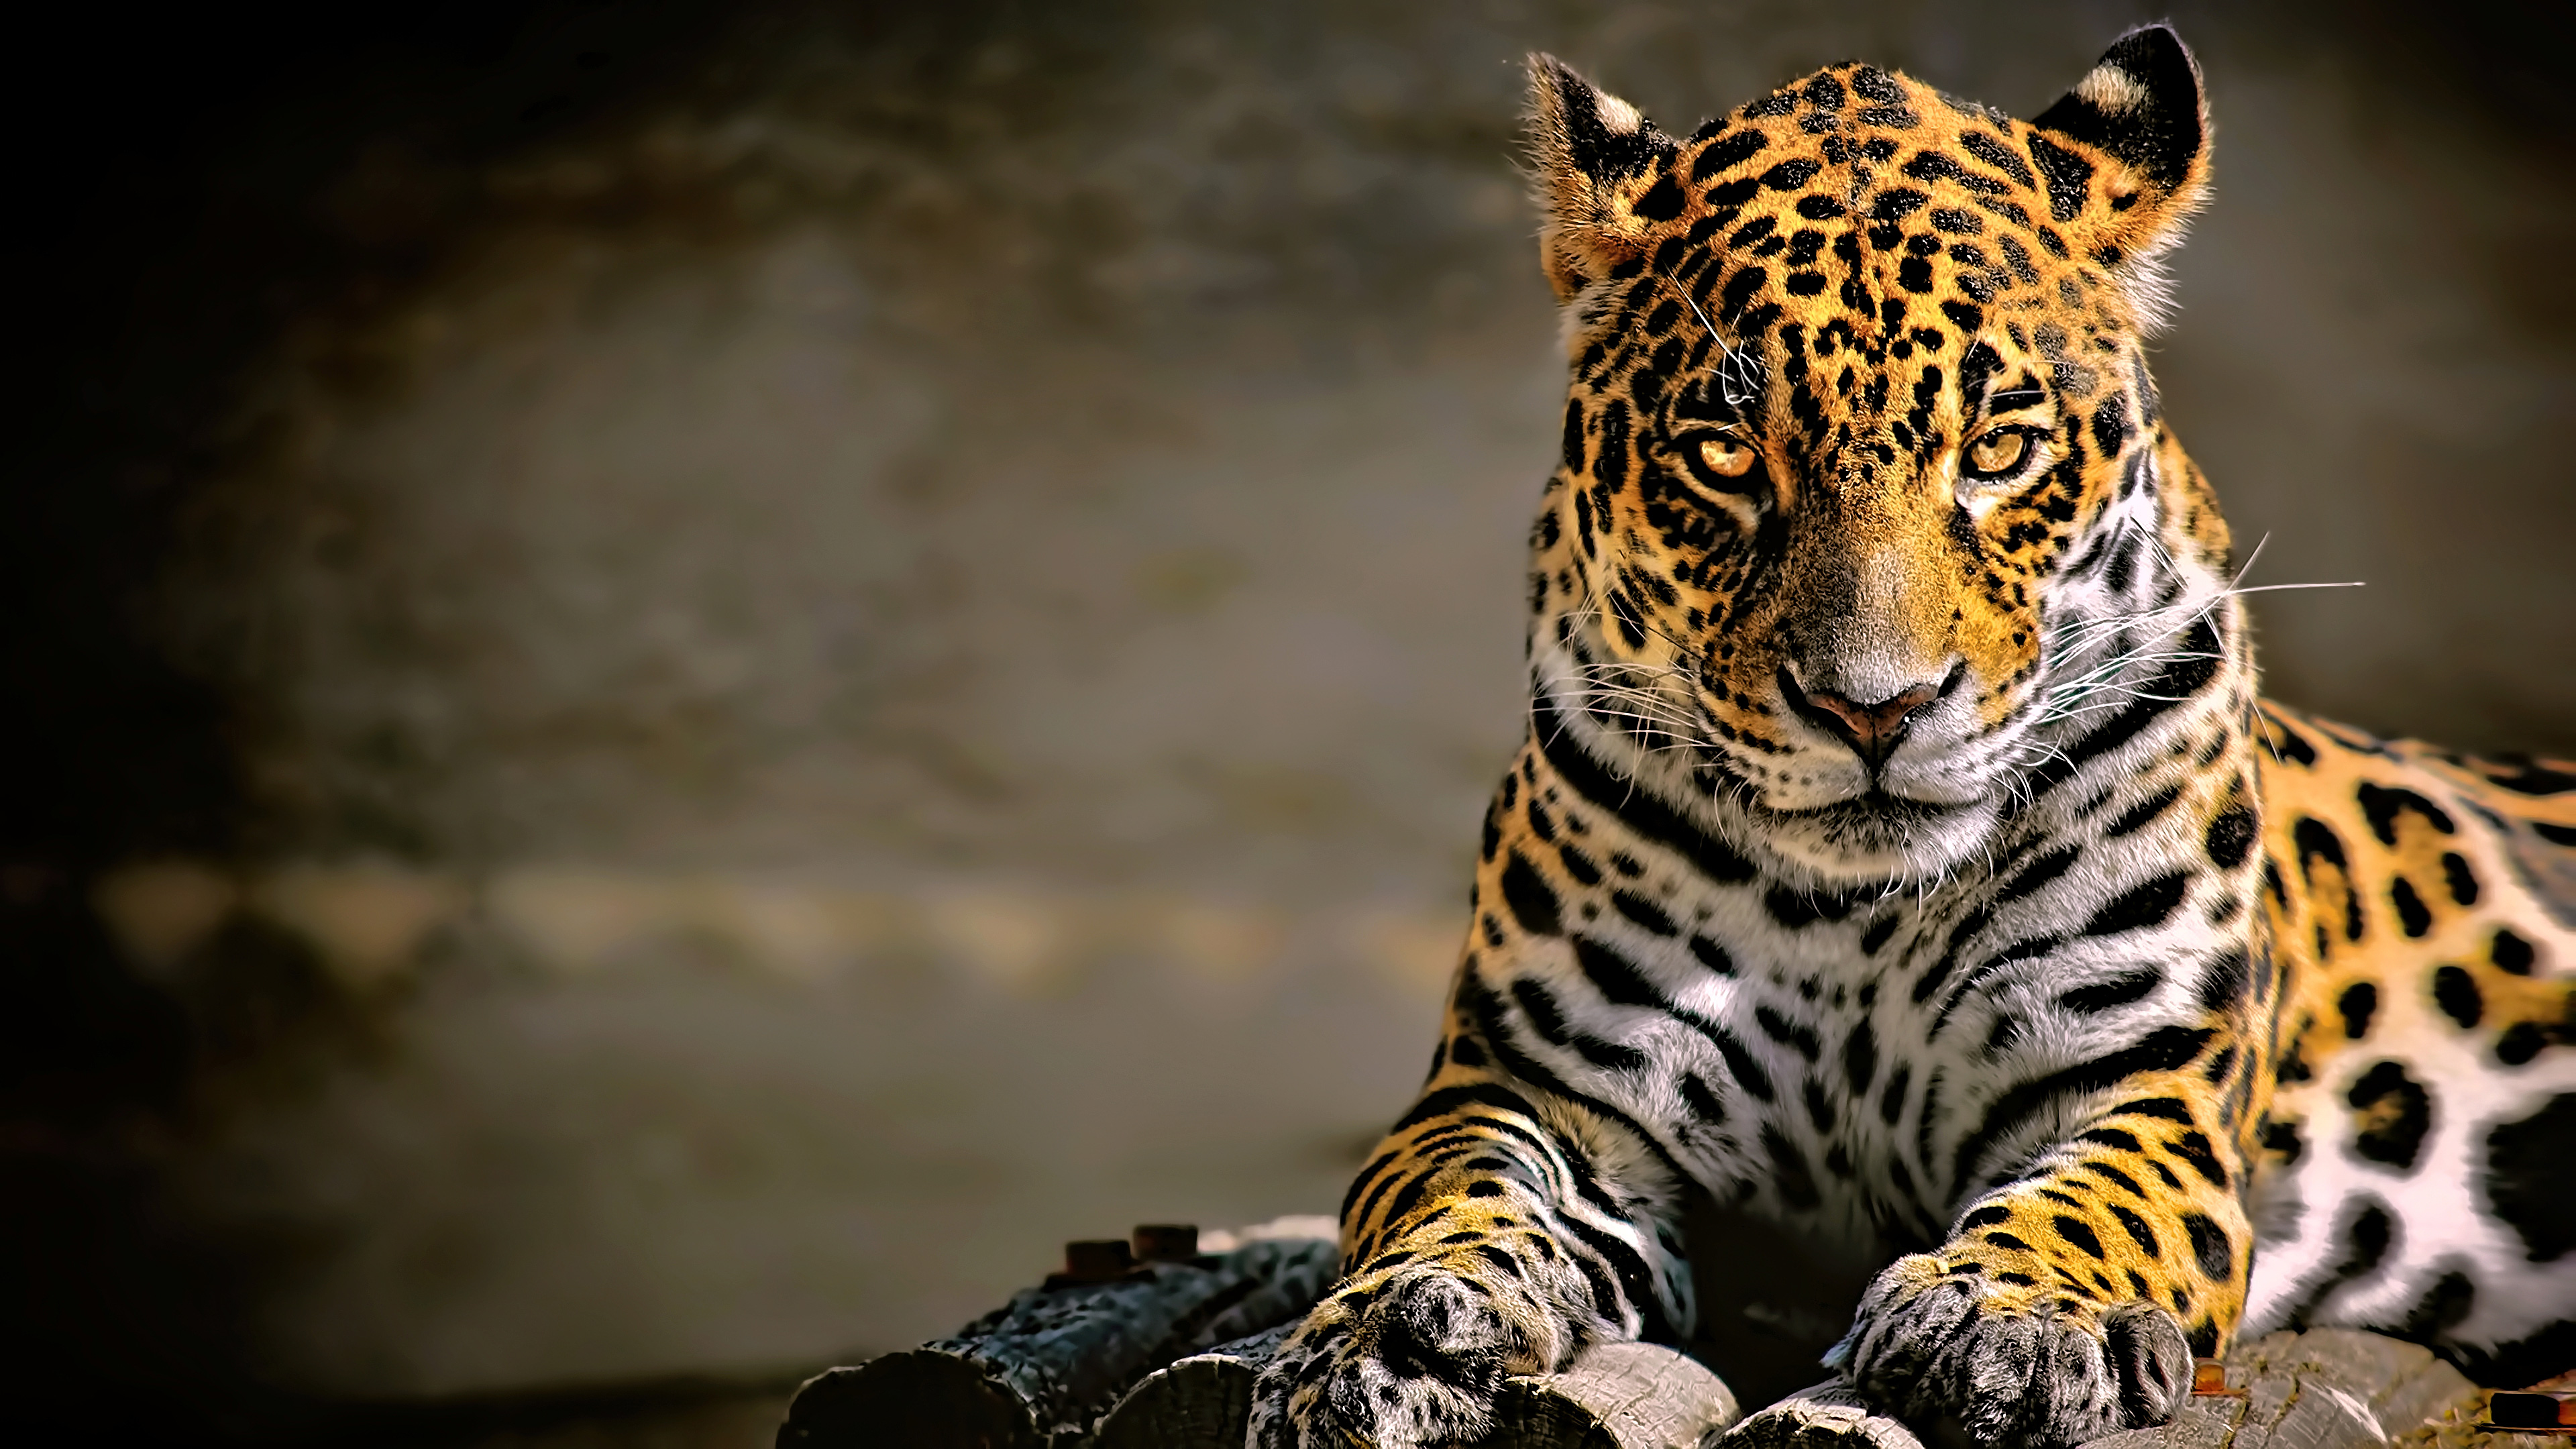 leopard 4k glowing eyes hd animals 4k wallpapers images